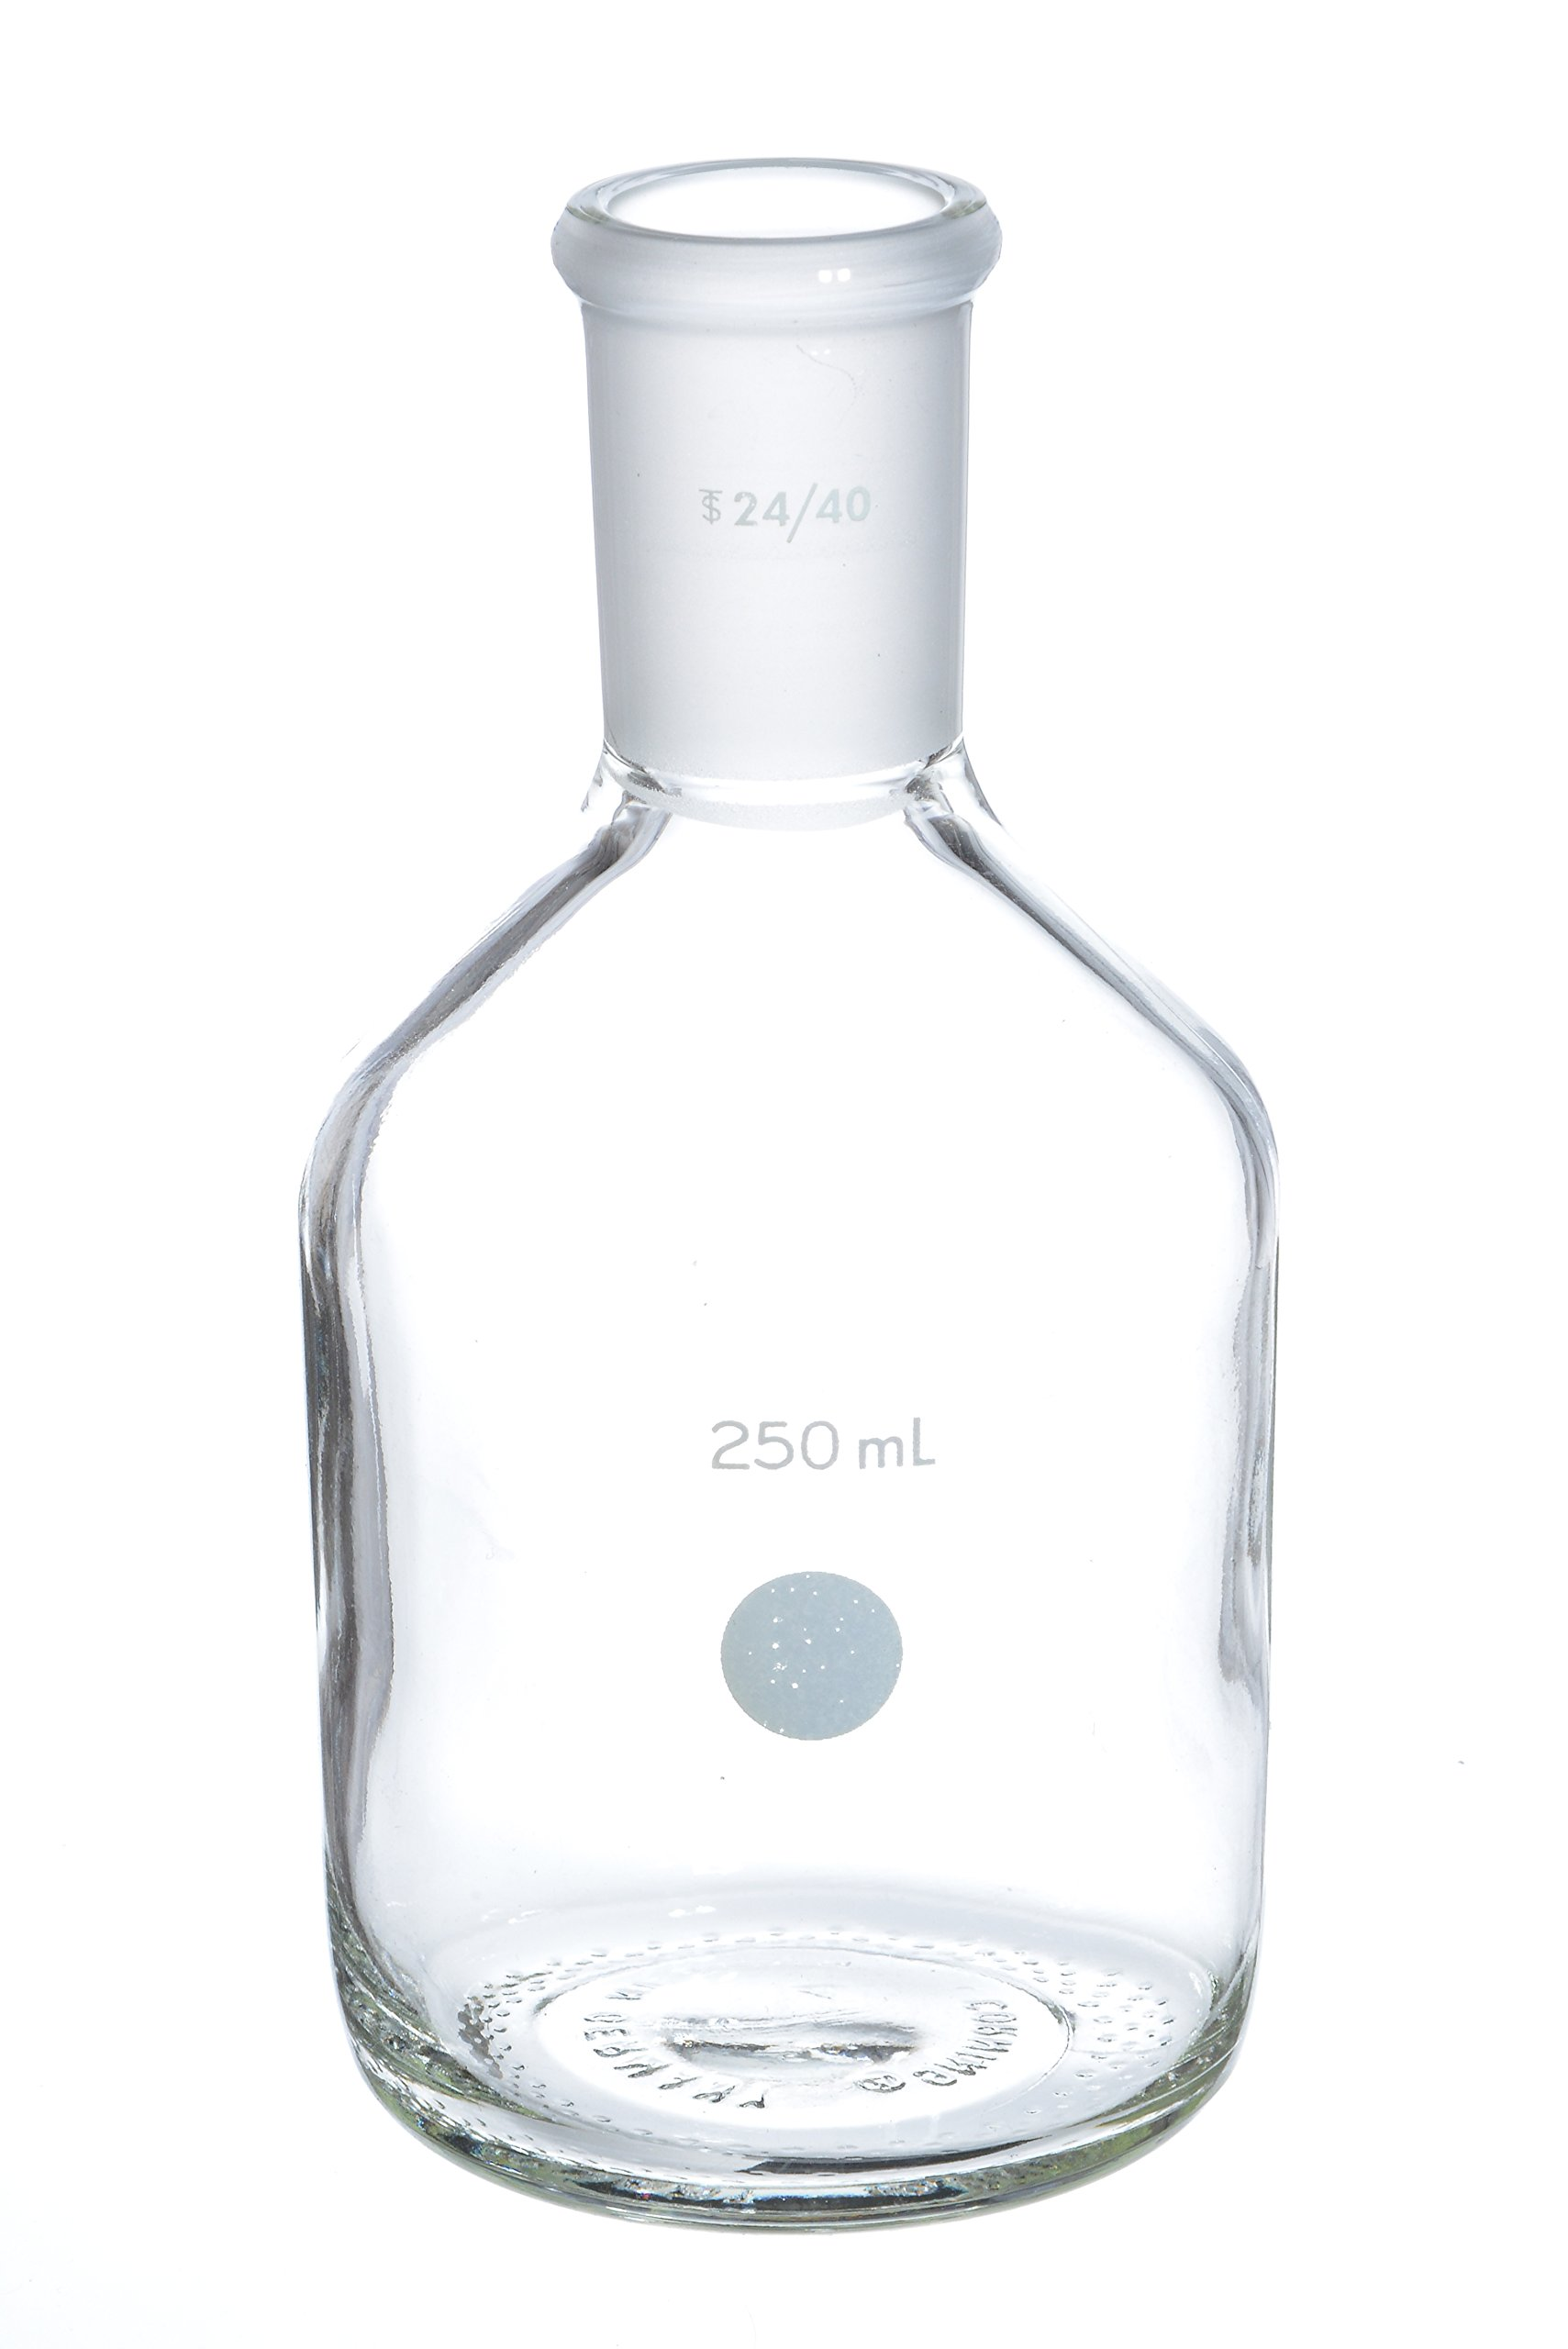 Wilmad-LabGlass LG-3460-100 Single Neck Bottle, 250mL, Standard Taper 24/40 Outer